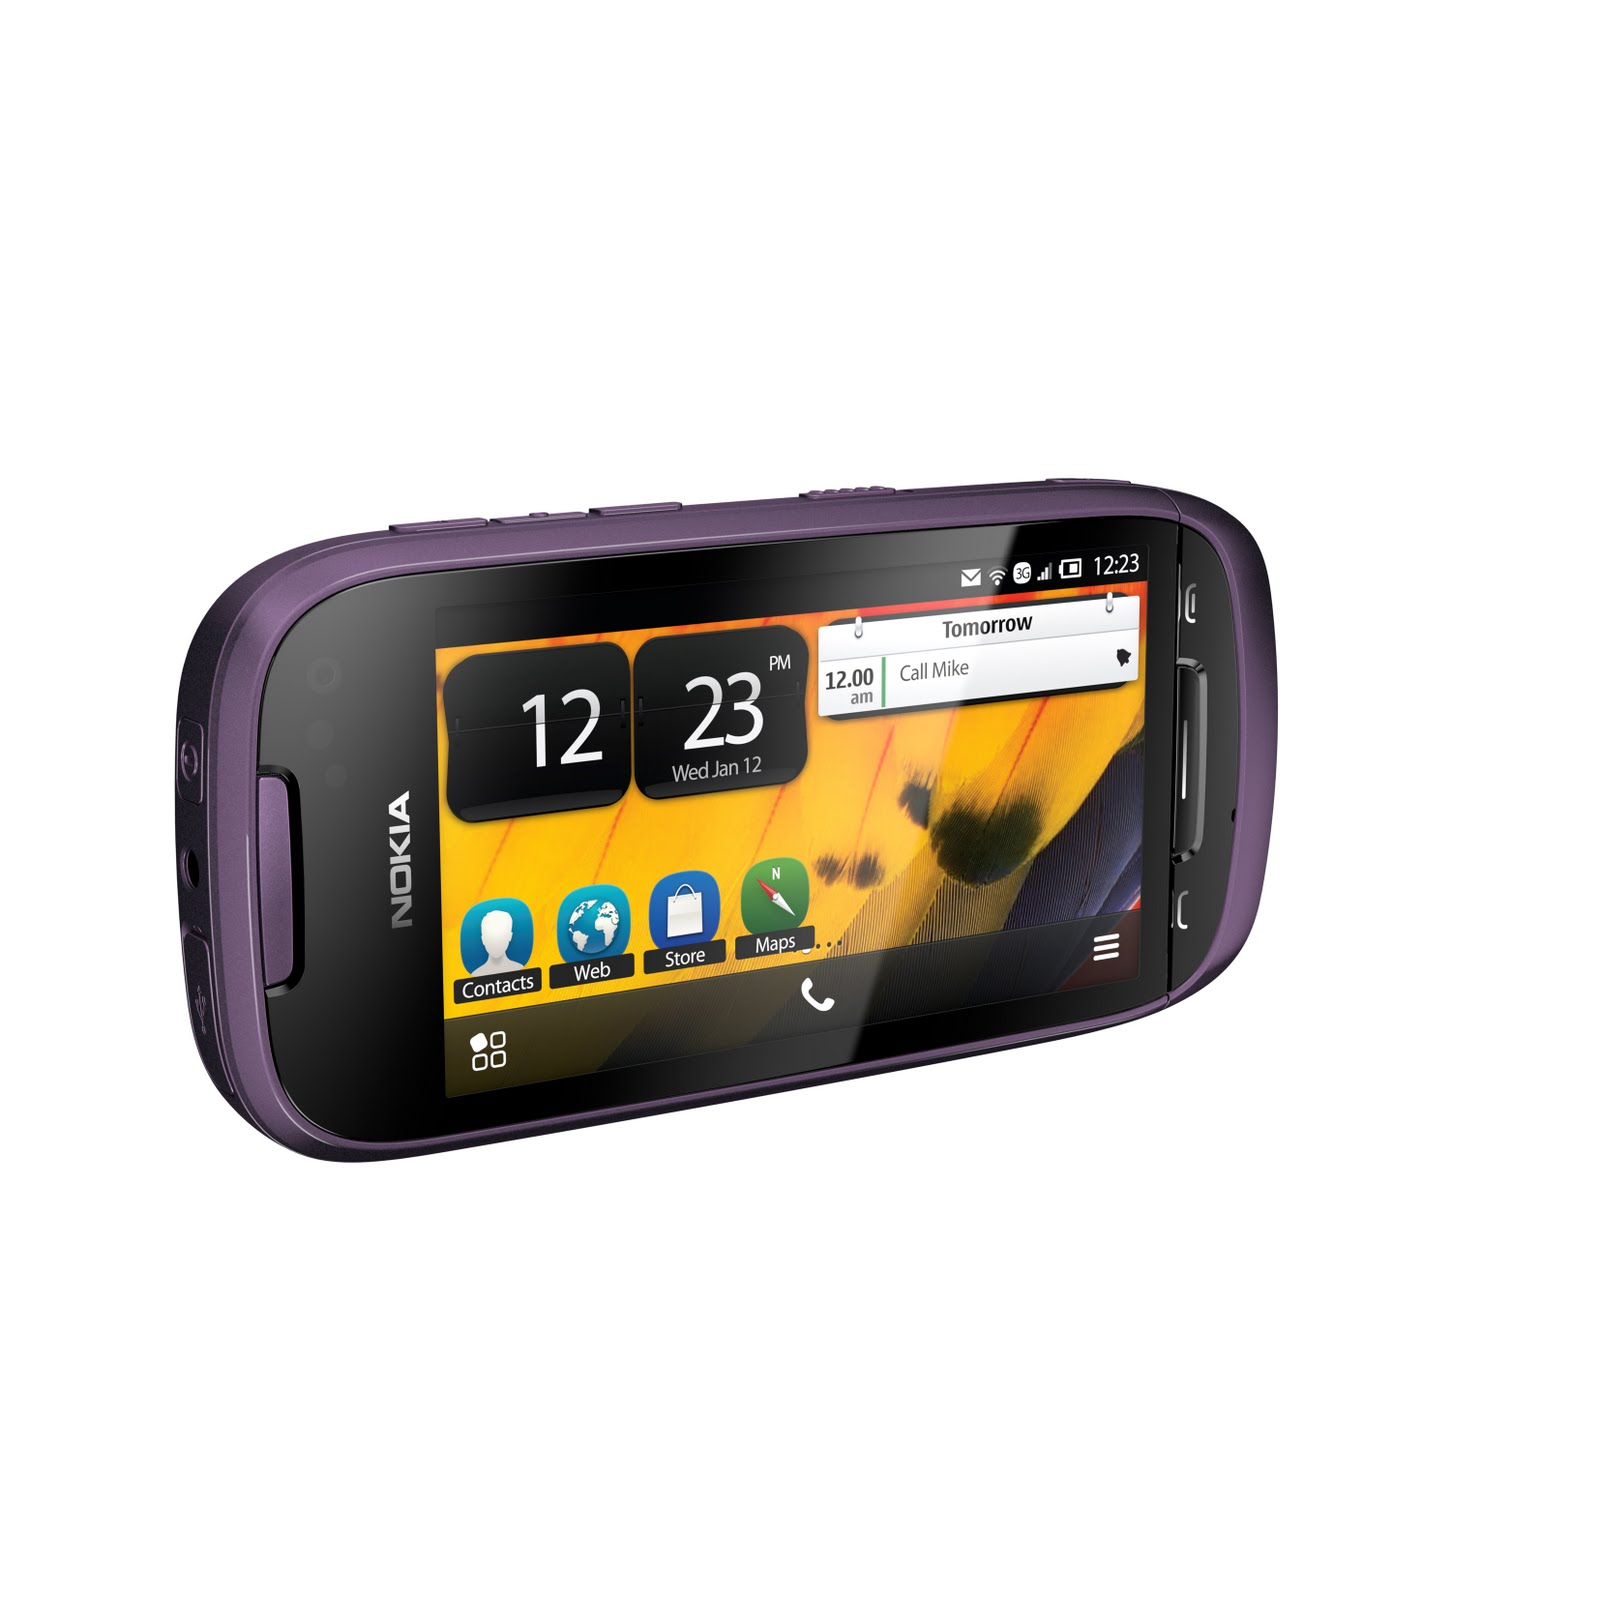 nokia 701 nokia sbrightest smartphone thenokia 701 is a sleek